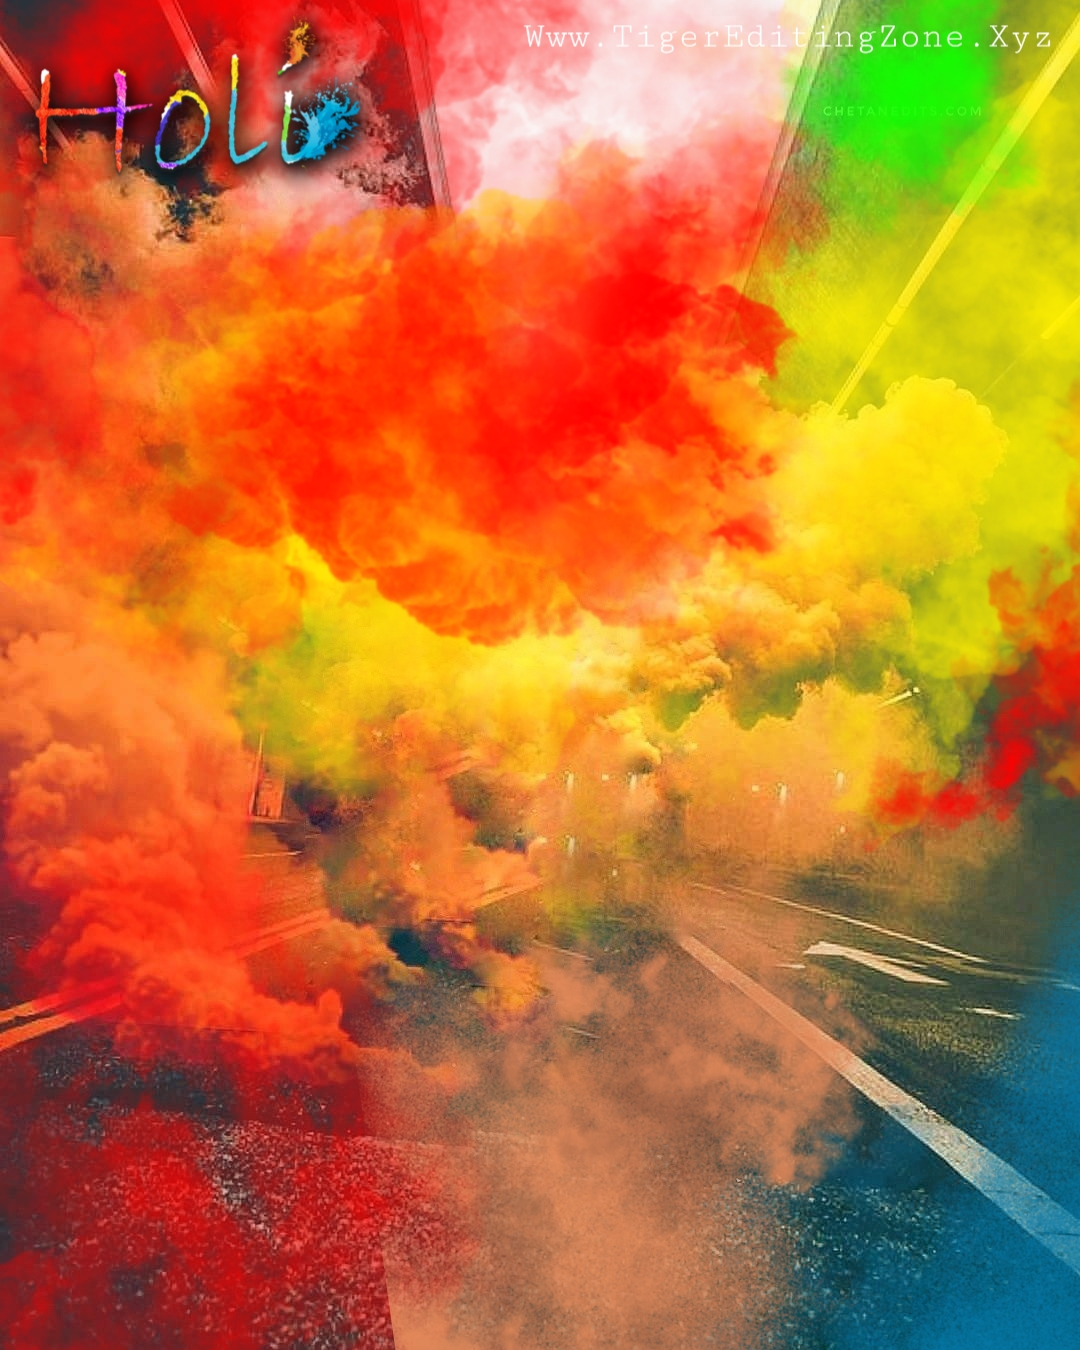 Happy Holi Photo Editing in Picsart 2021 | Holi Special Photo Editing Background Hd